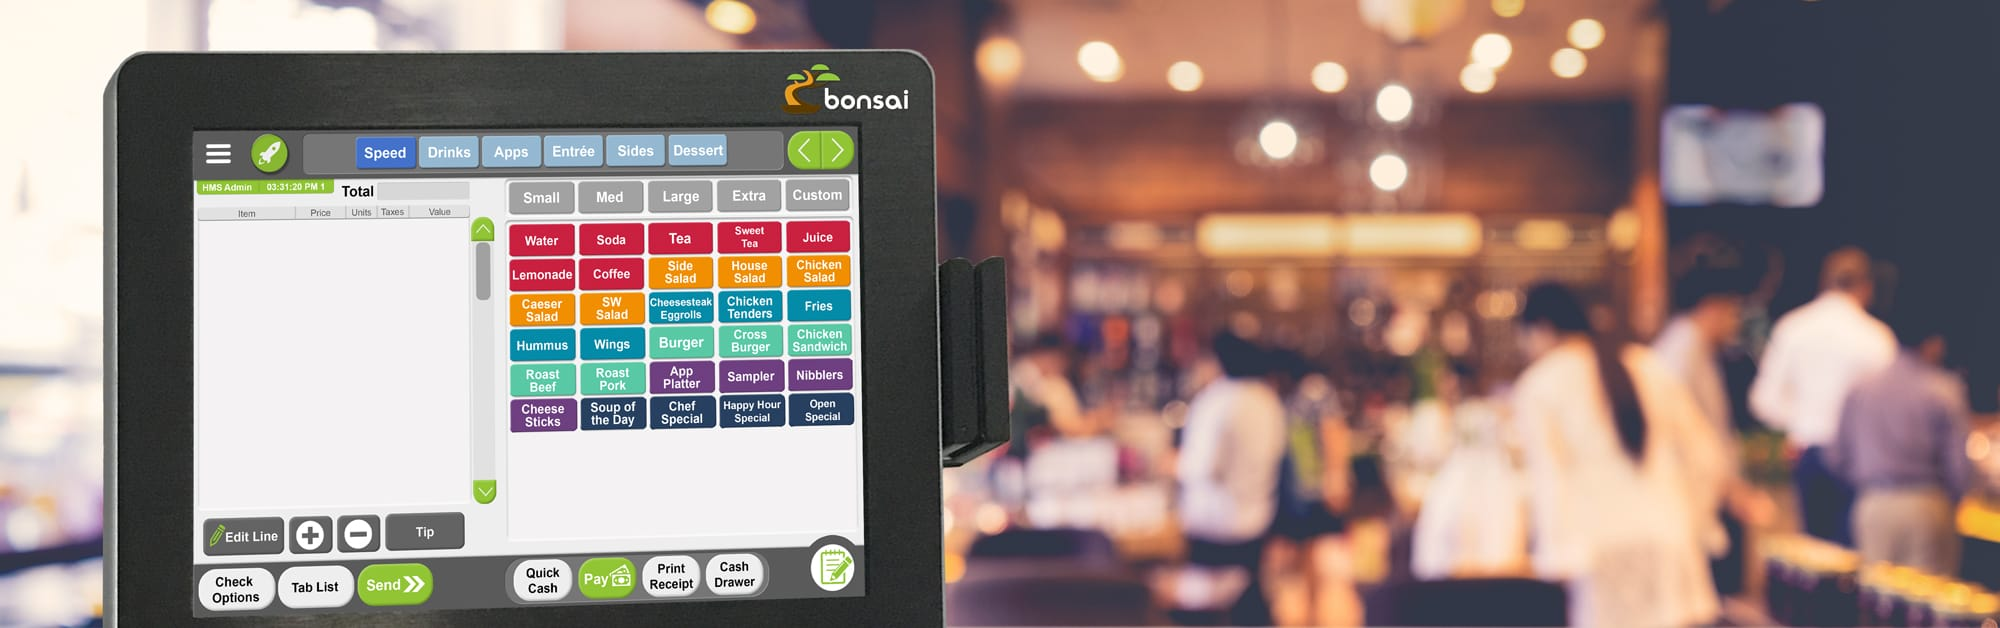 bonsai POS systems for restaurants